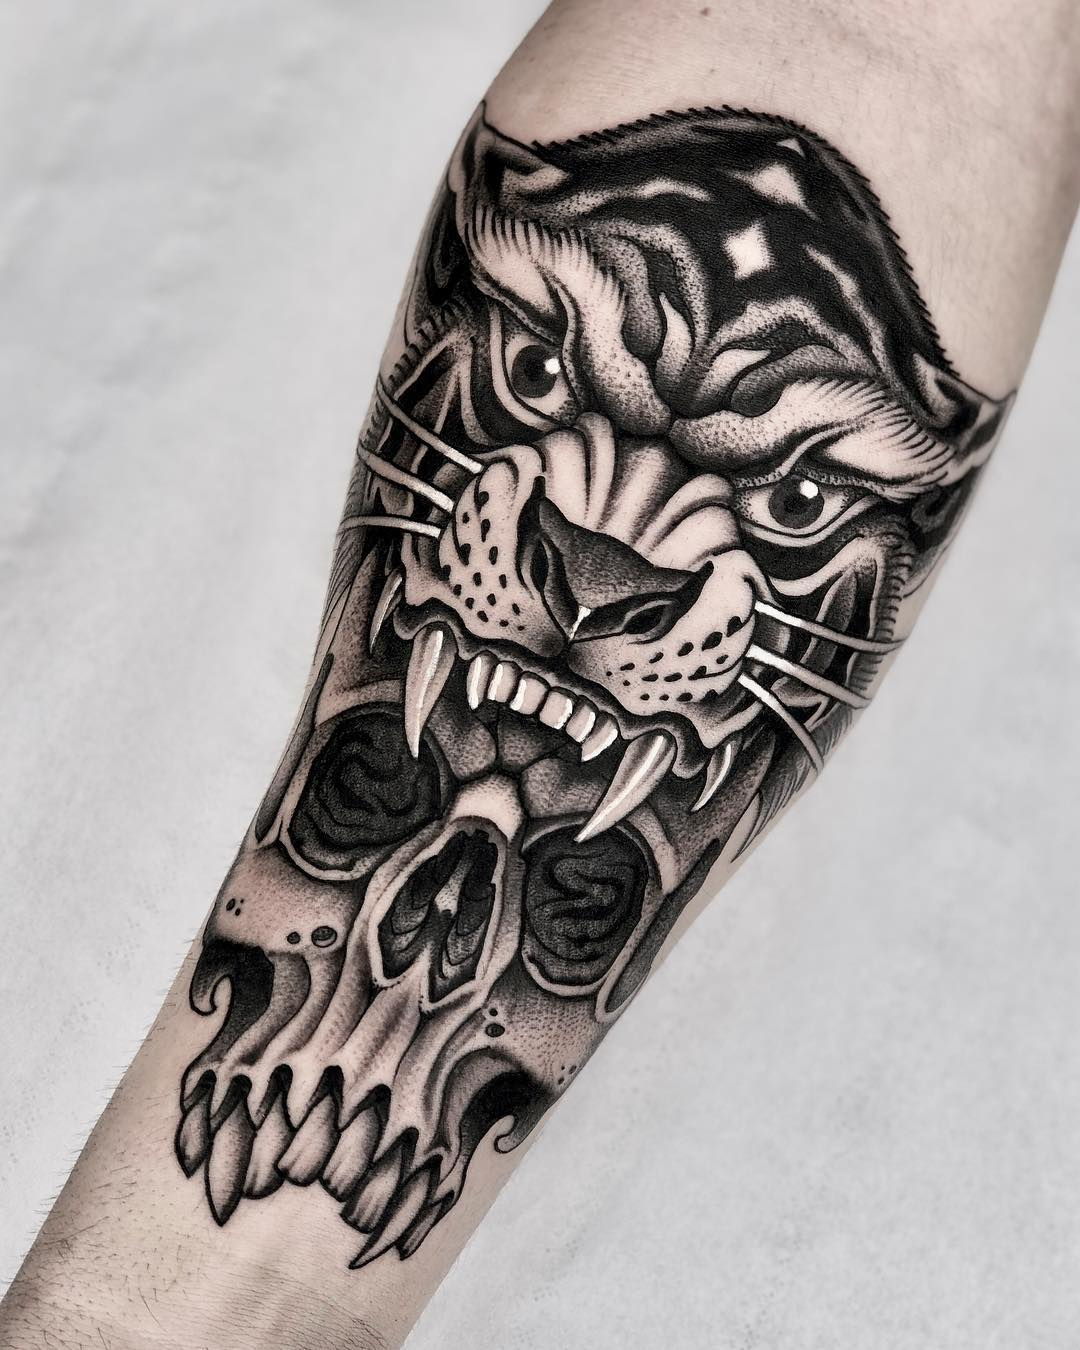 michelich black and grey tattoo artist london 03